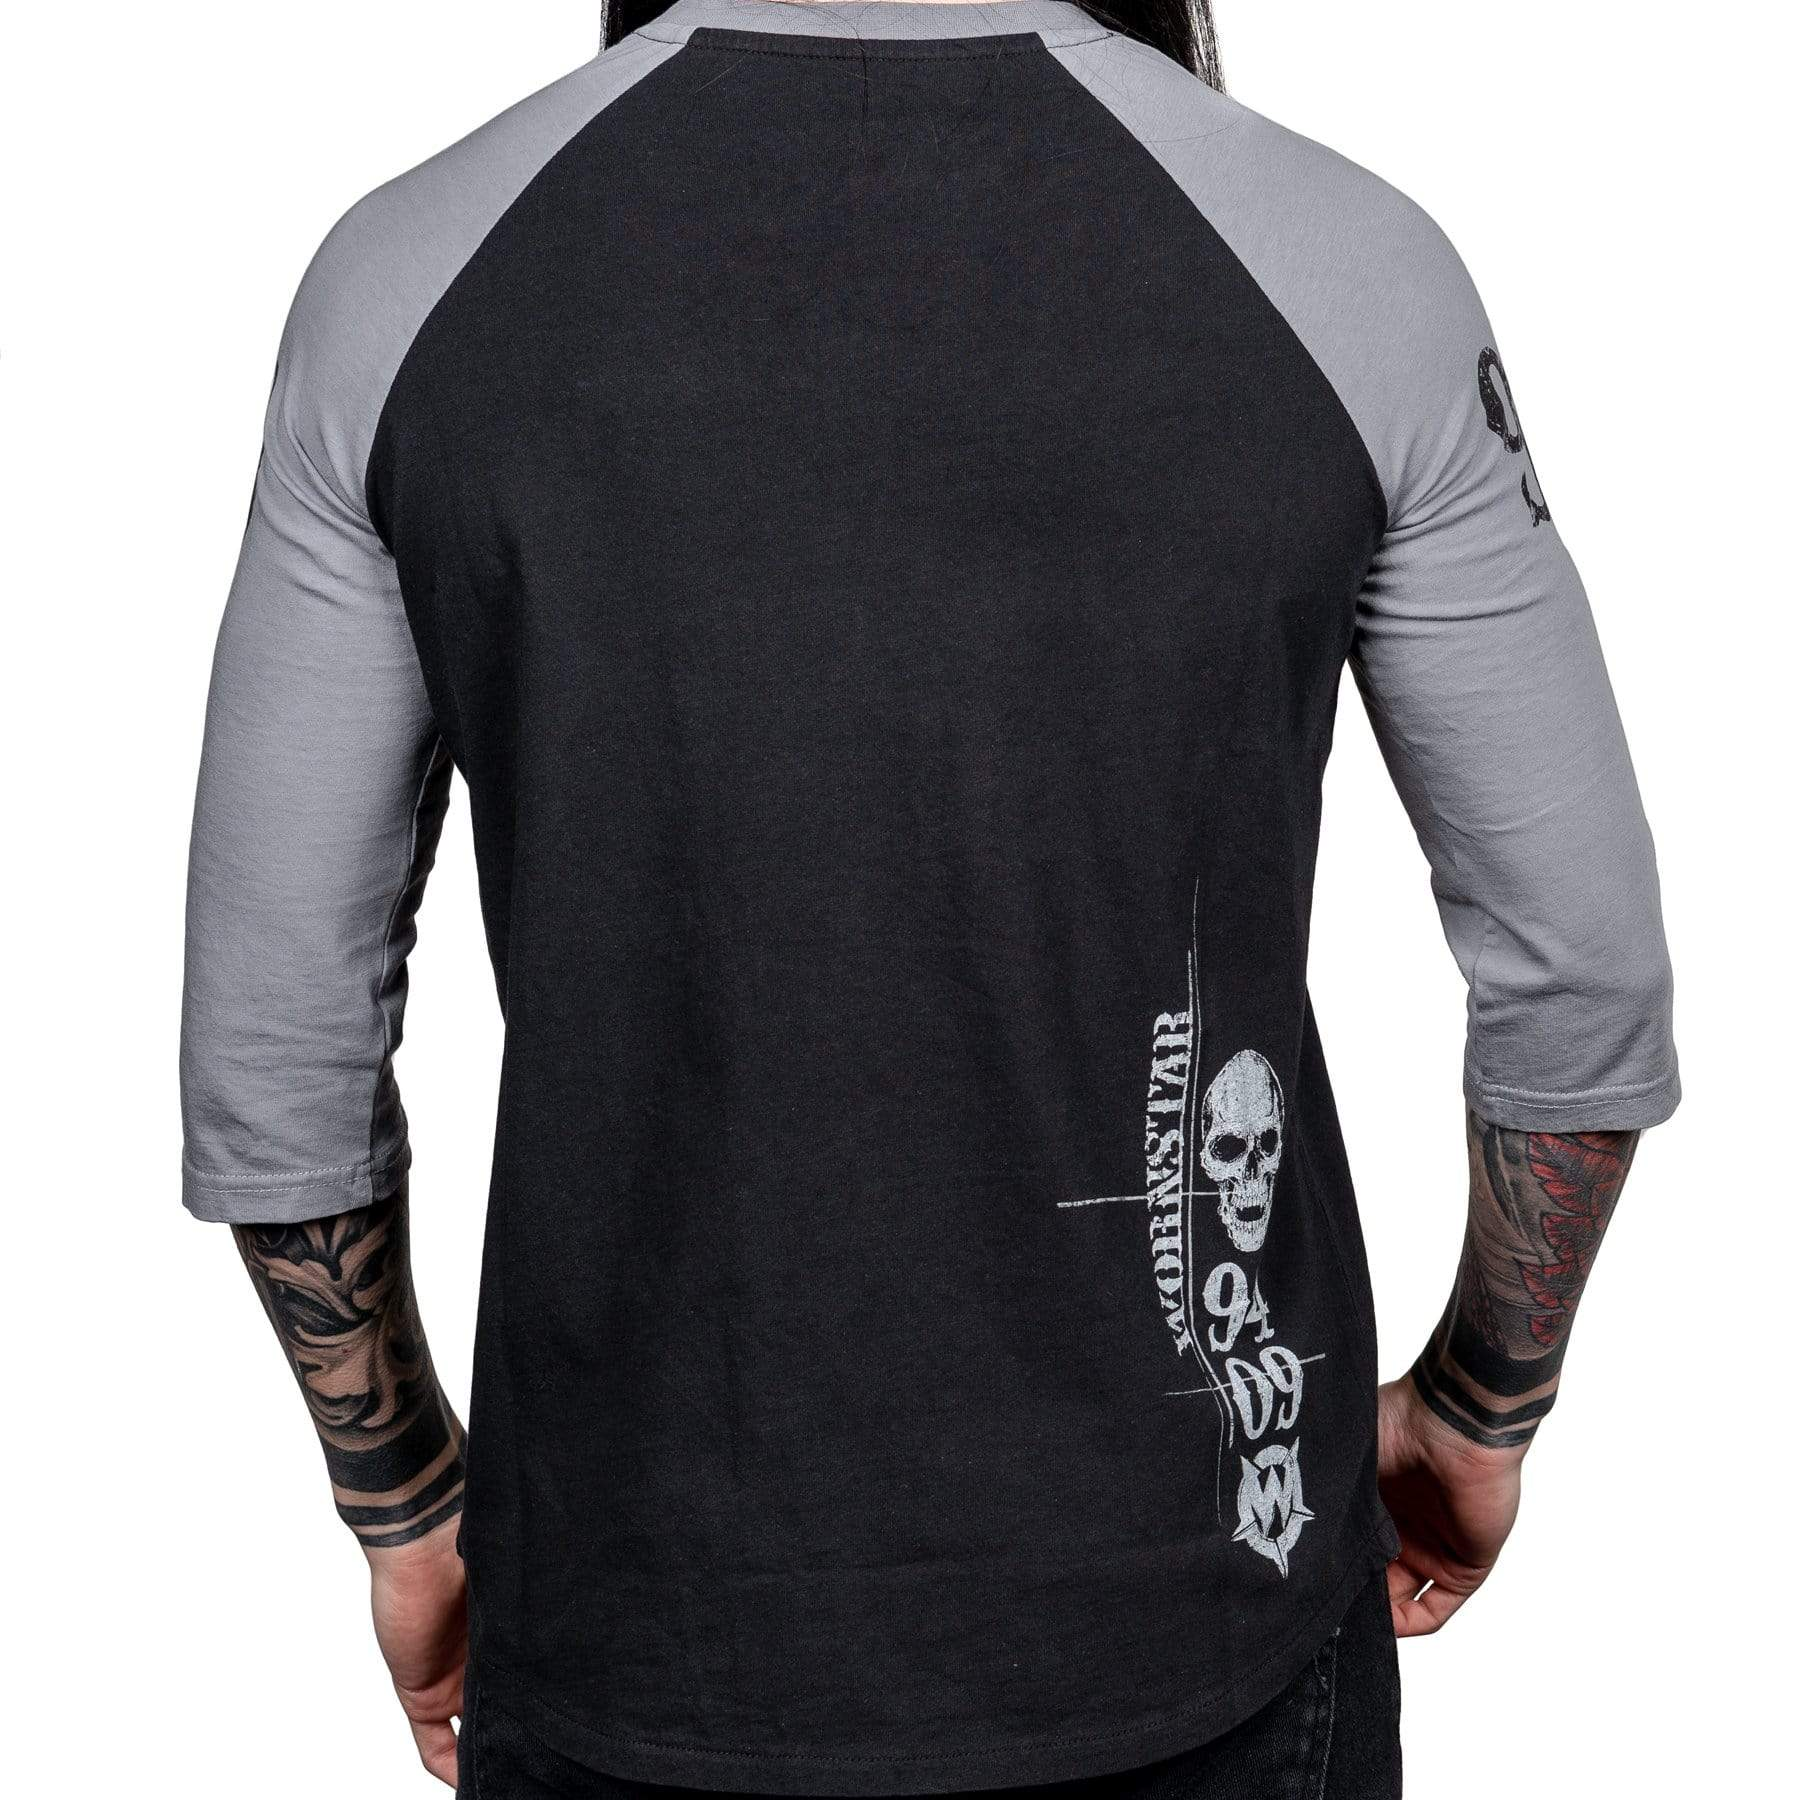 Wornstar Clothing Vengeance raglan tee black with gray sleeves and skull and wings graphic.